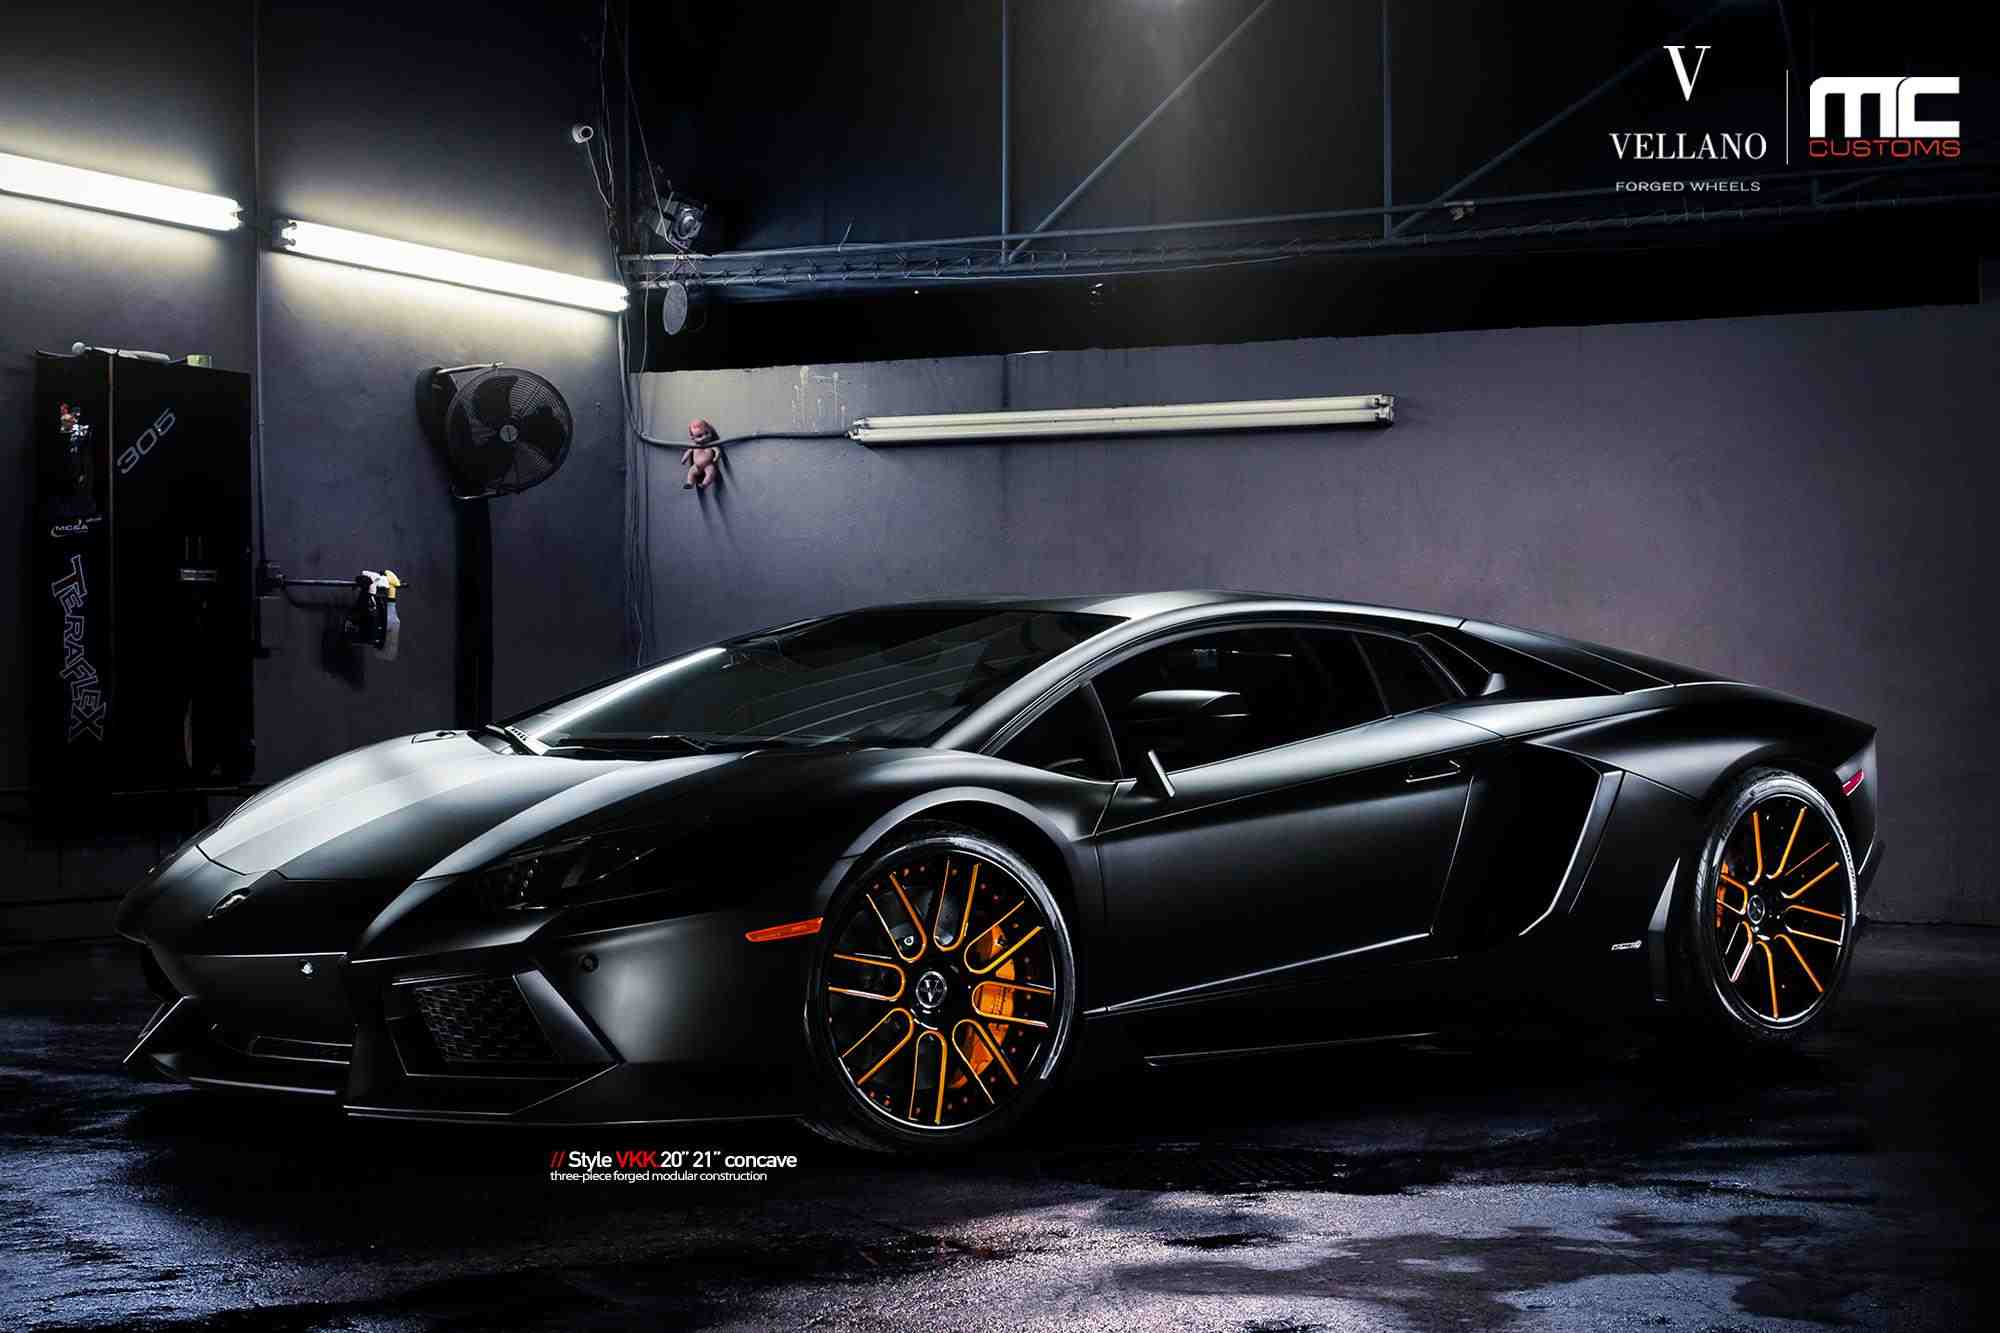 Lamborghini Aventador Black Vellano HD Wallpaper 3380 2000x1333